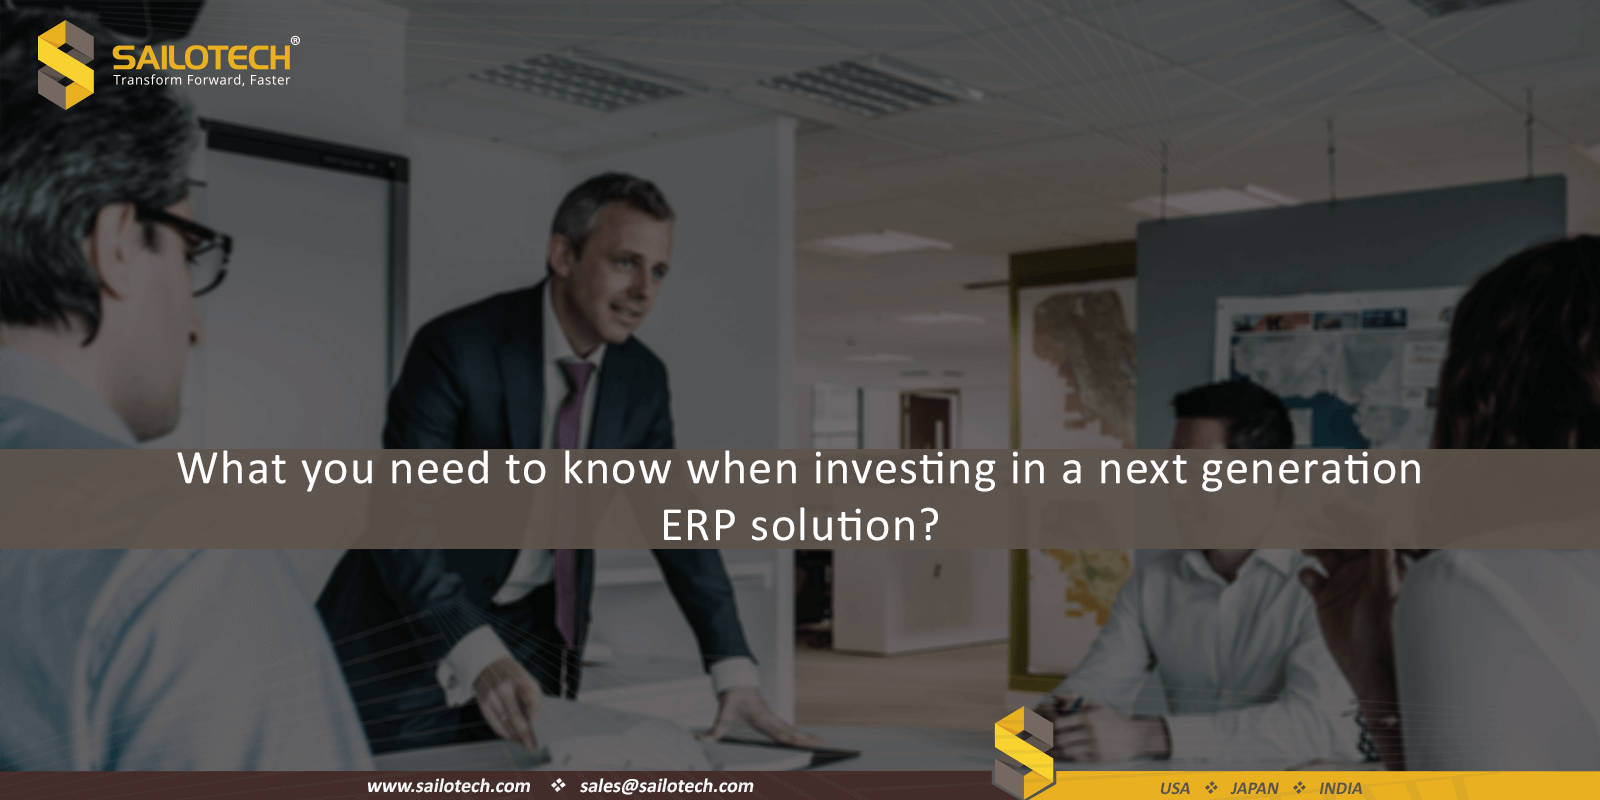 What you need to know when investing in a next generation ERP solution?